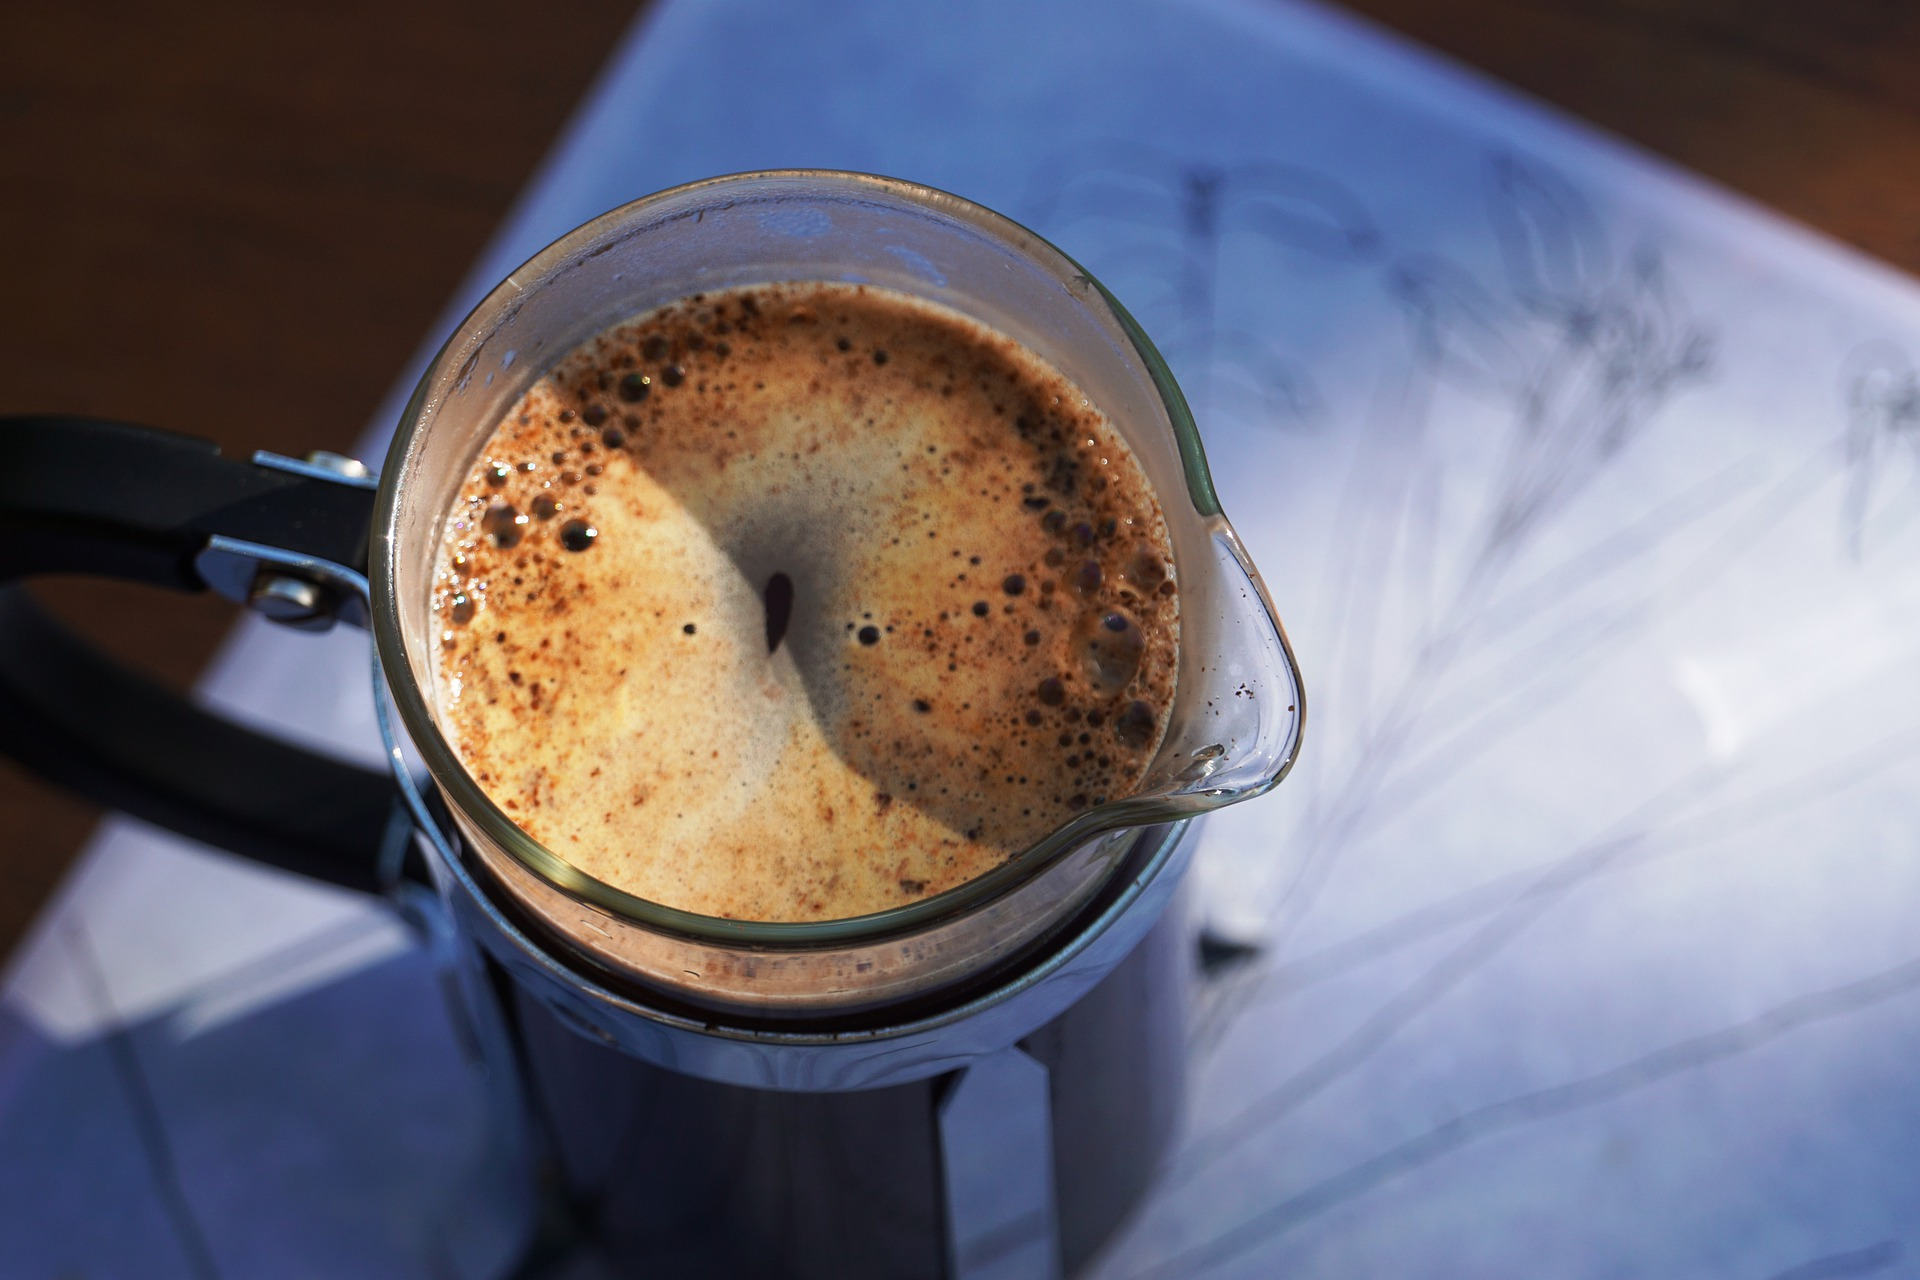 a top view of a french press filled with coffee